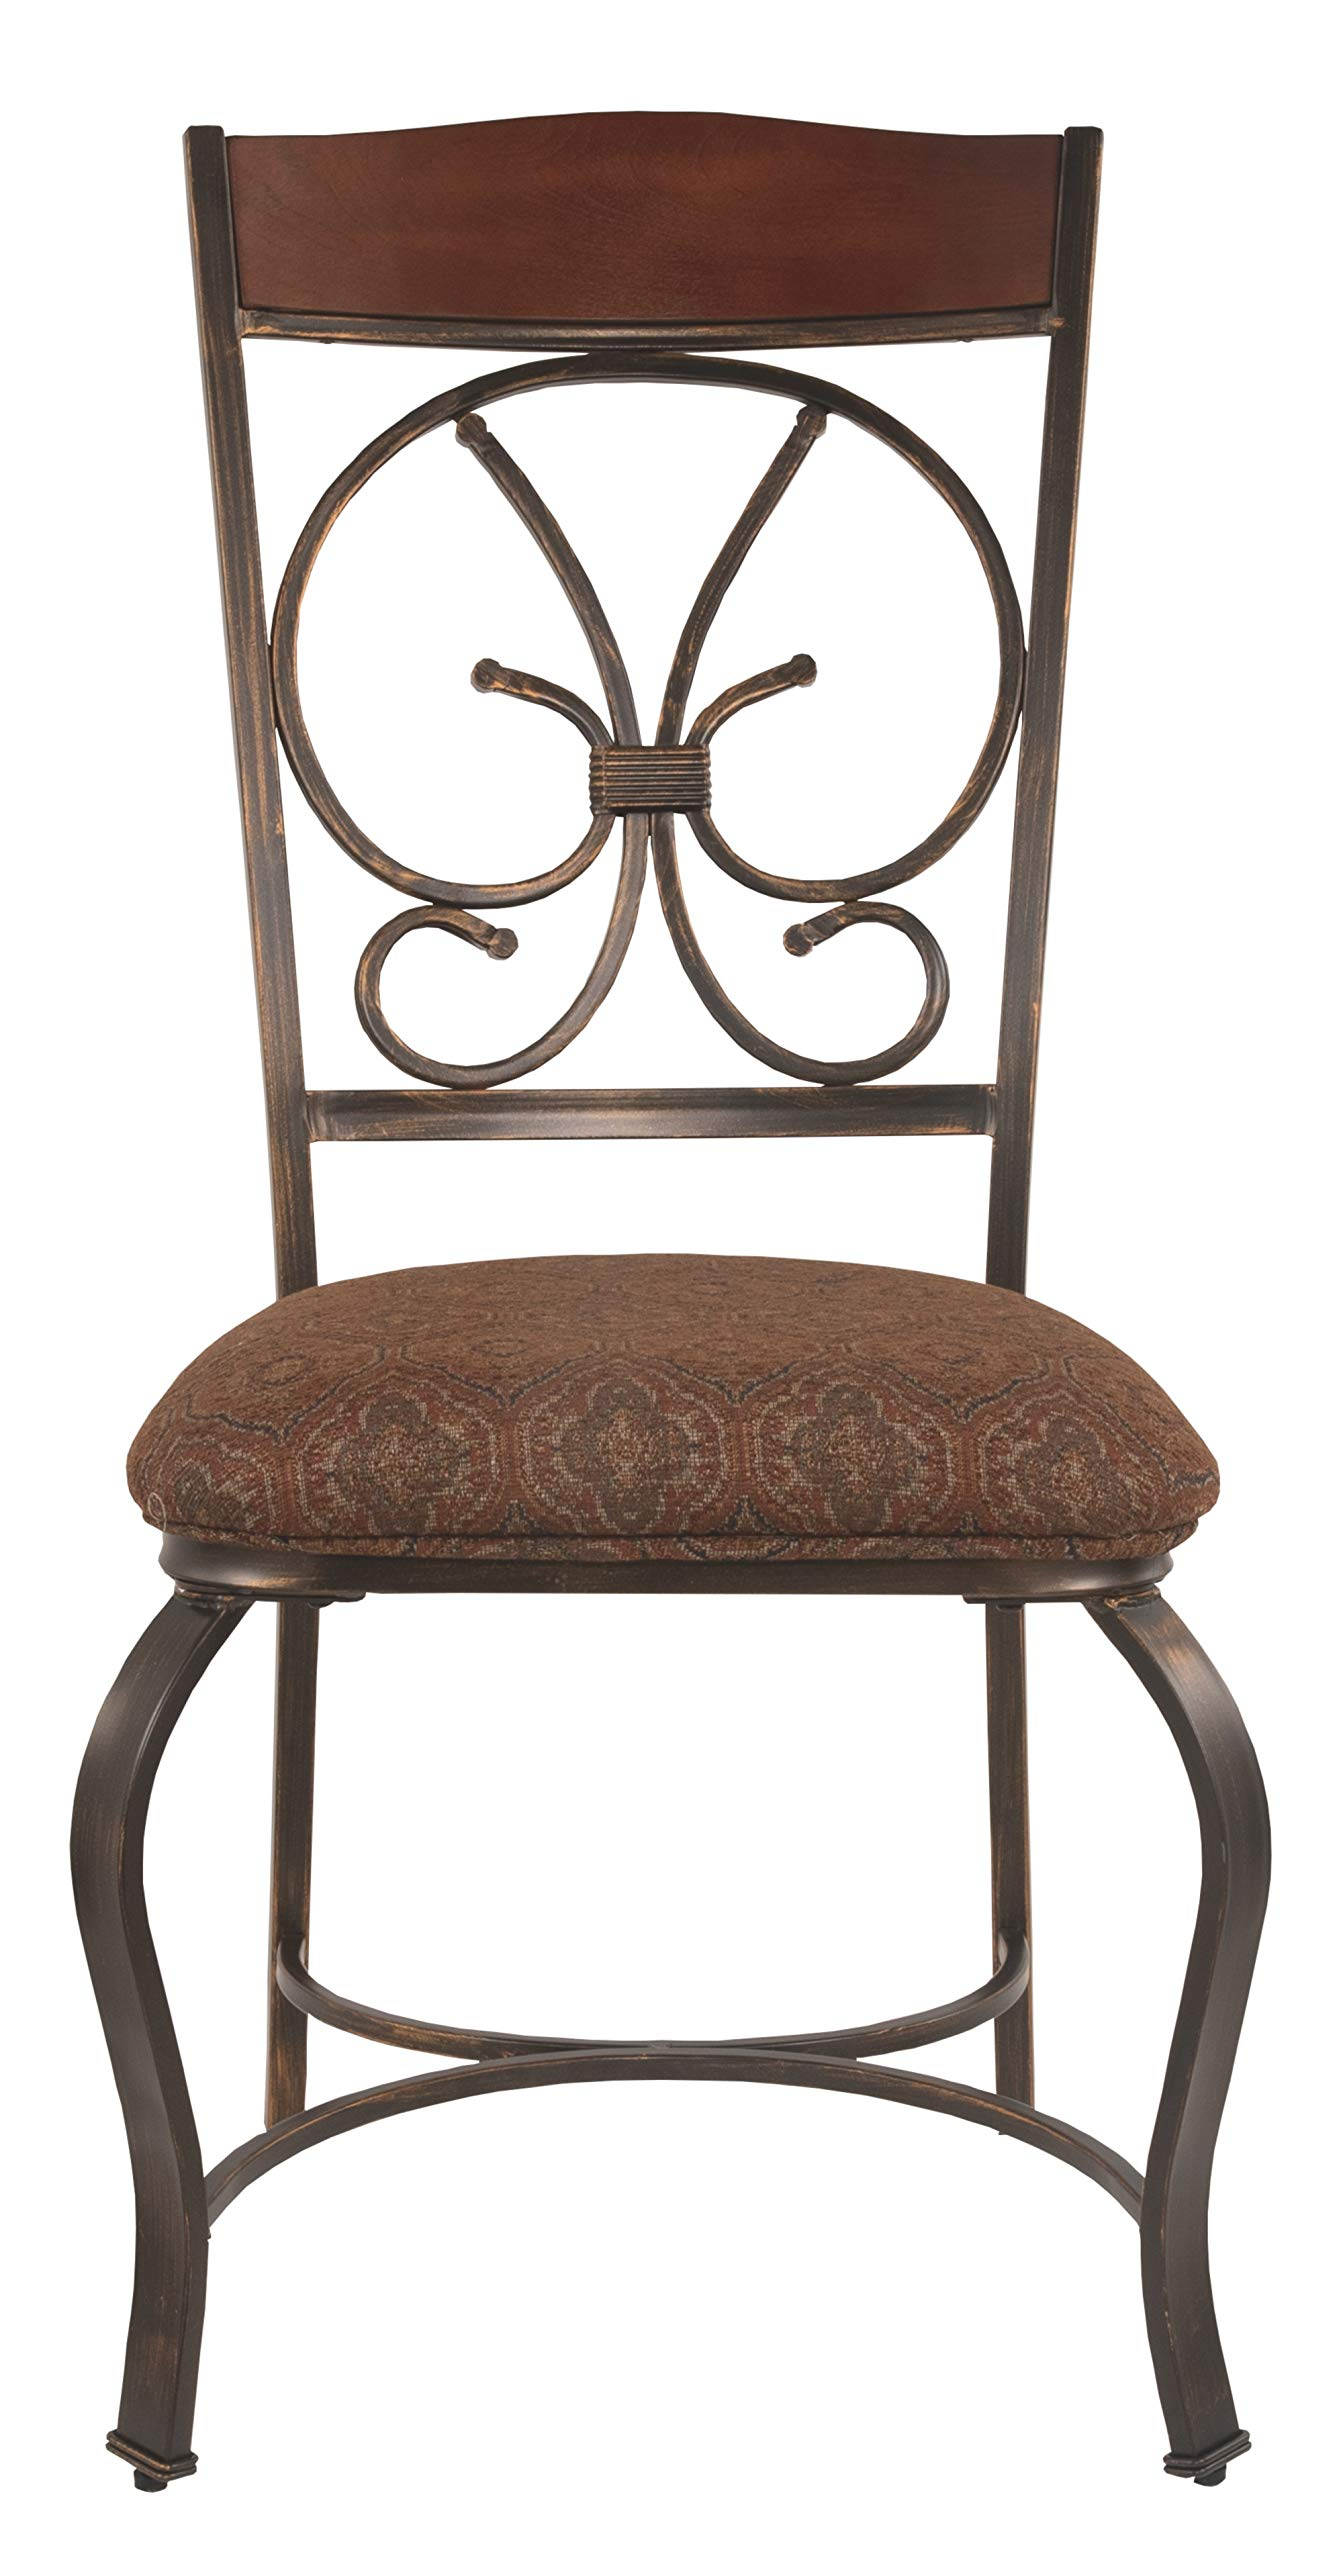 Ashley Furniture Signature Design - Glambrey Dining Room Chair Set - Scrolled Metal Accents - Set of 4 - Brown by Signature Design by Ashley (Image #3)